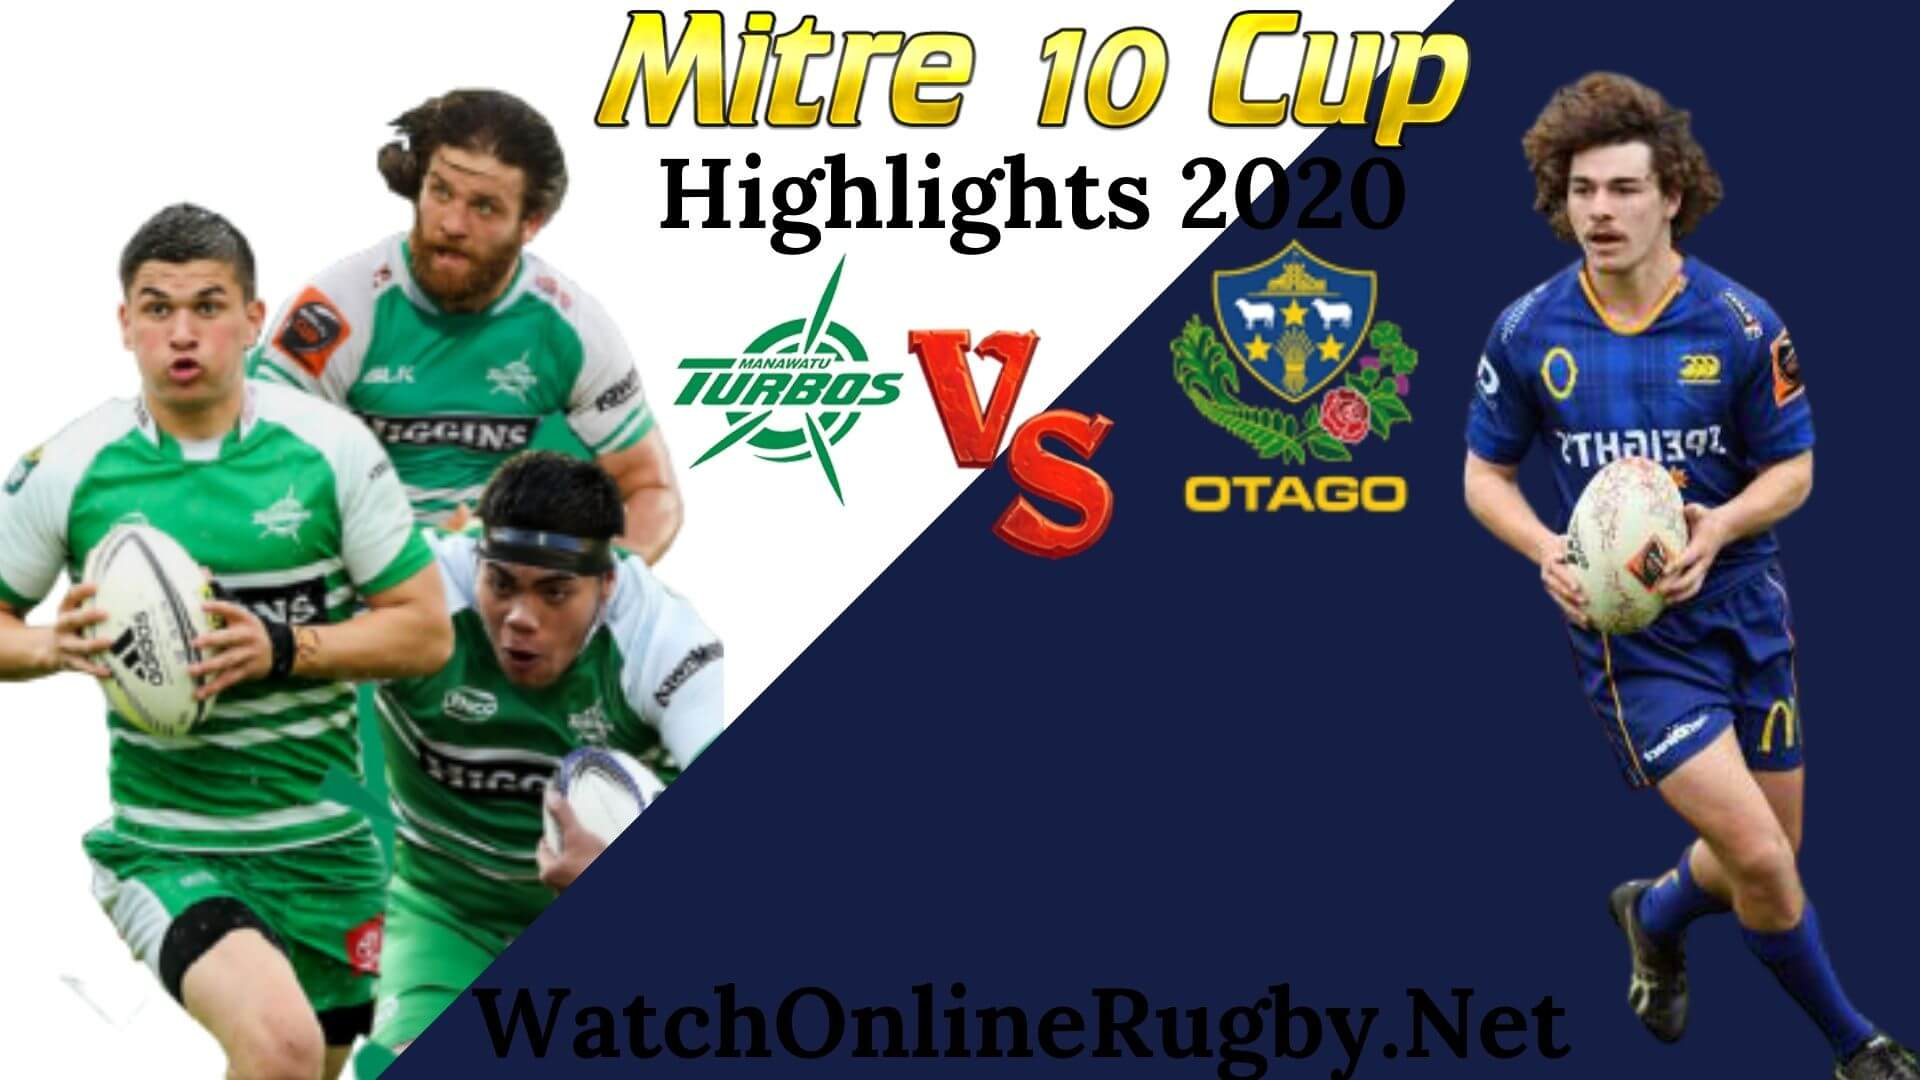 Manawatu vs Otago RD 2 Highlights 2020 M10 Cup